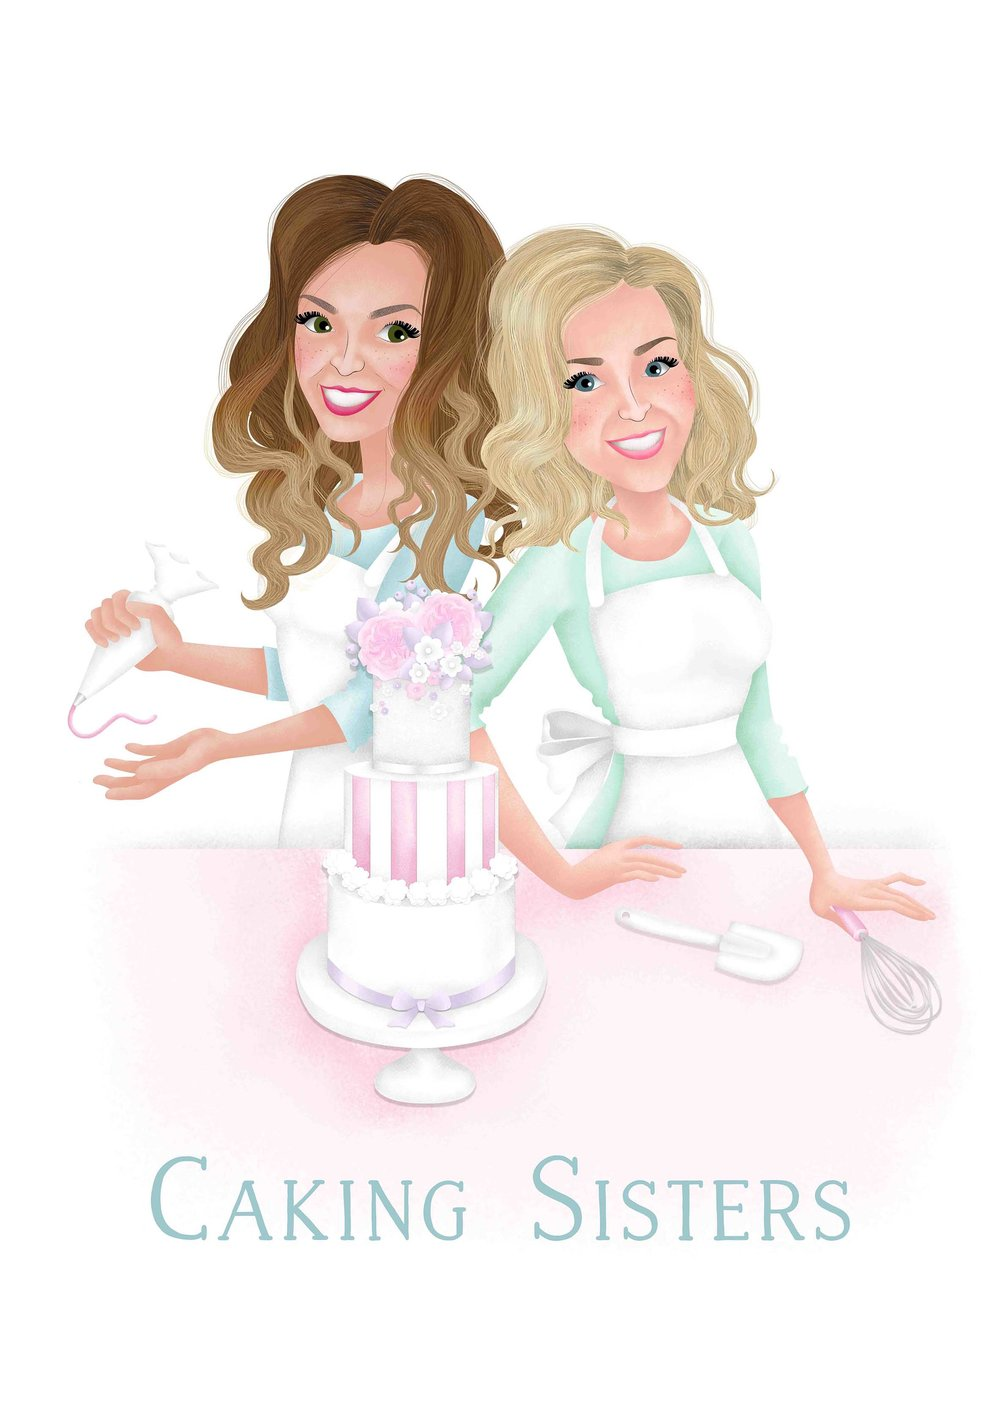 CAKING SISTERS - A1 - 594mm x 841mm - V2.jpg